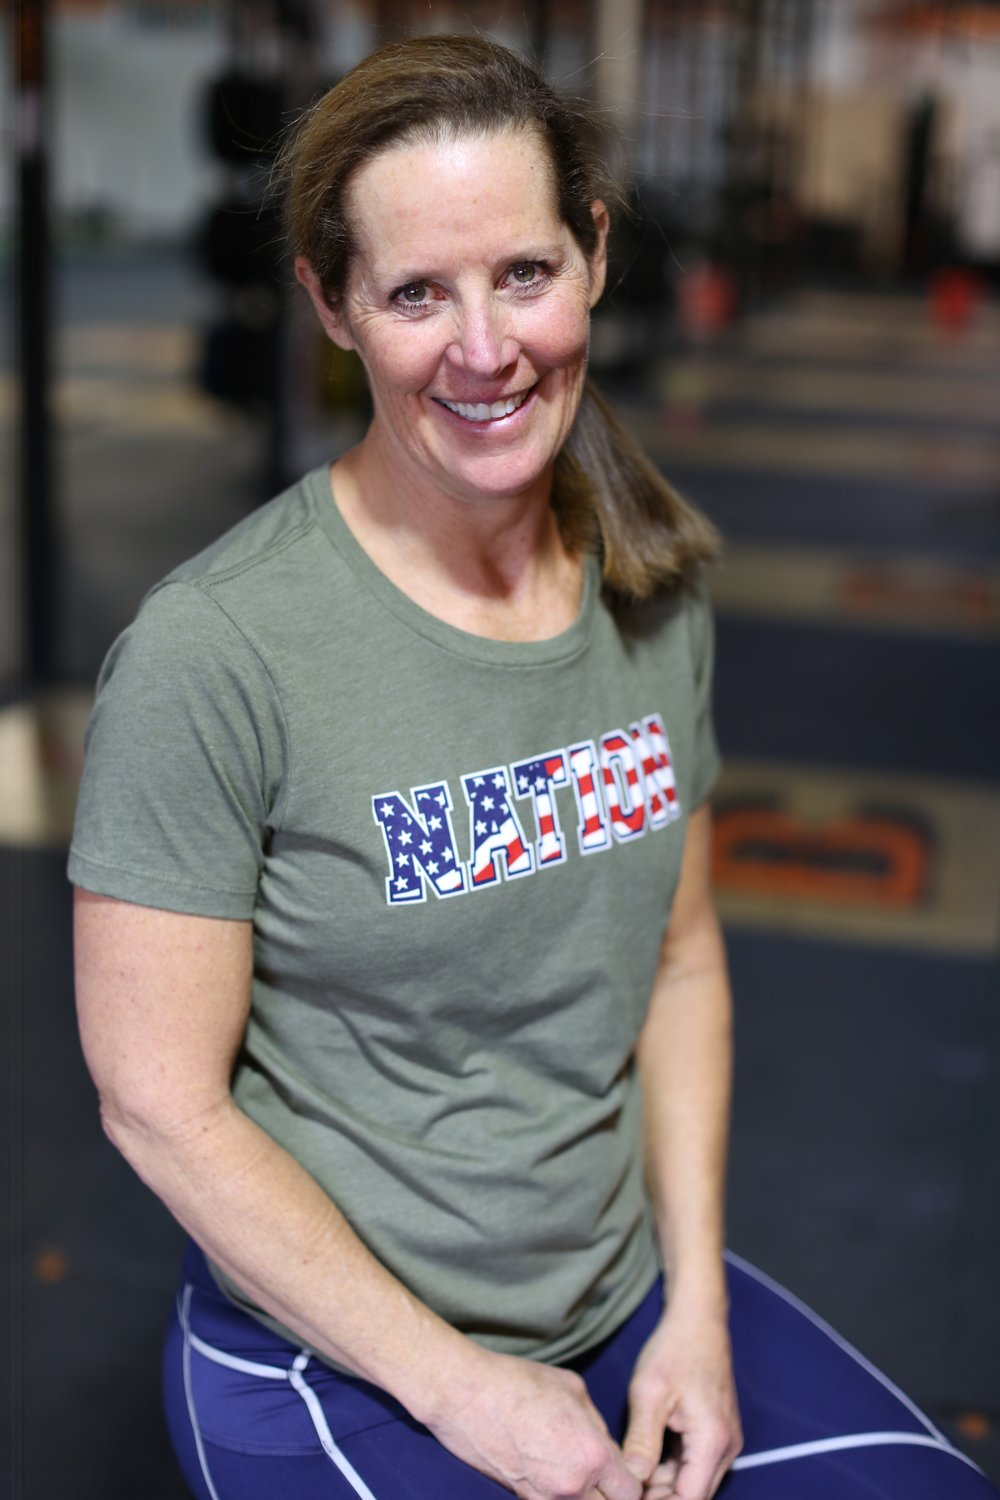 Diane Stone - I started CrossFit in September 2012. In July of 2013 I received my CFL-1 certificate and started coaching. Over the past 6 years I have enjoyed coaching and CrossFit competitions. In 2017 I finished the Open in 17th place and the AGOQ in 23rd worldwide. I have qualified 4 times to compete at the Granite Games, finishing the 2018 event in !st place. My certifications include CrossFit CFL-2, CrossFit Weightlifting, CrossFit Gymnastics, 30 year member and Level III Professional Ski Instructor of America, AFAA Personal Trainer, CPR, Reebok Indoor Cycling Instructor and CPR.I was born raised in Atlanta, GA. After graduating high school I moved to Aspen, CO where I met my husband, Charlie. We have 2 children, Hannah and Berkley. I love to ski, surf and spend time with the kids. Other accomplishments2 Marathons2 Tough MuddersTown of Aspen Race Series- Mountain & Road BikingUS Swimming Athlete